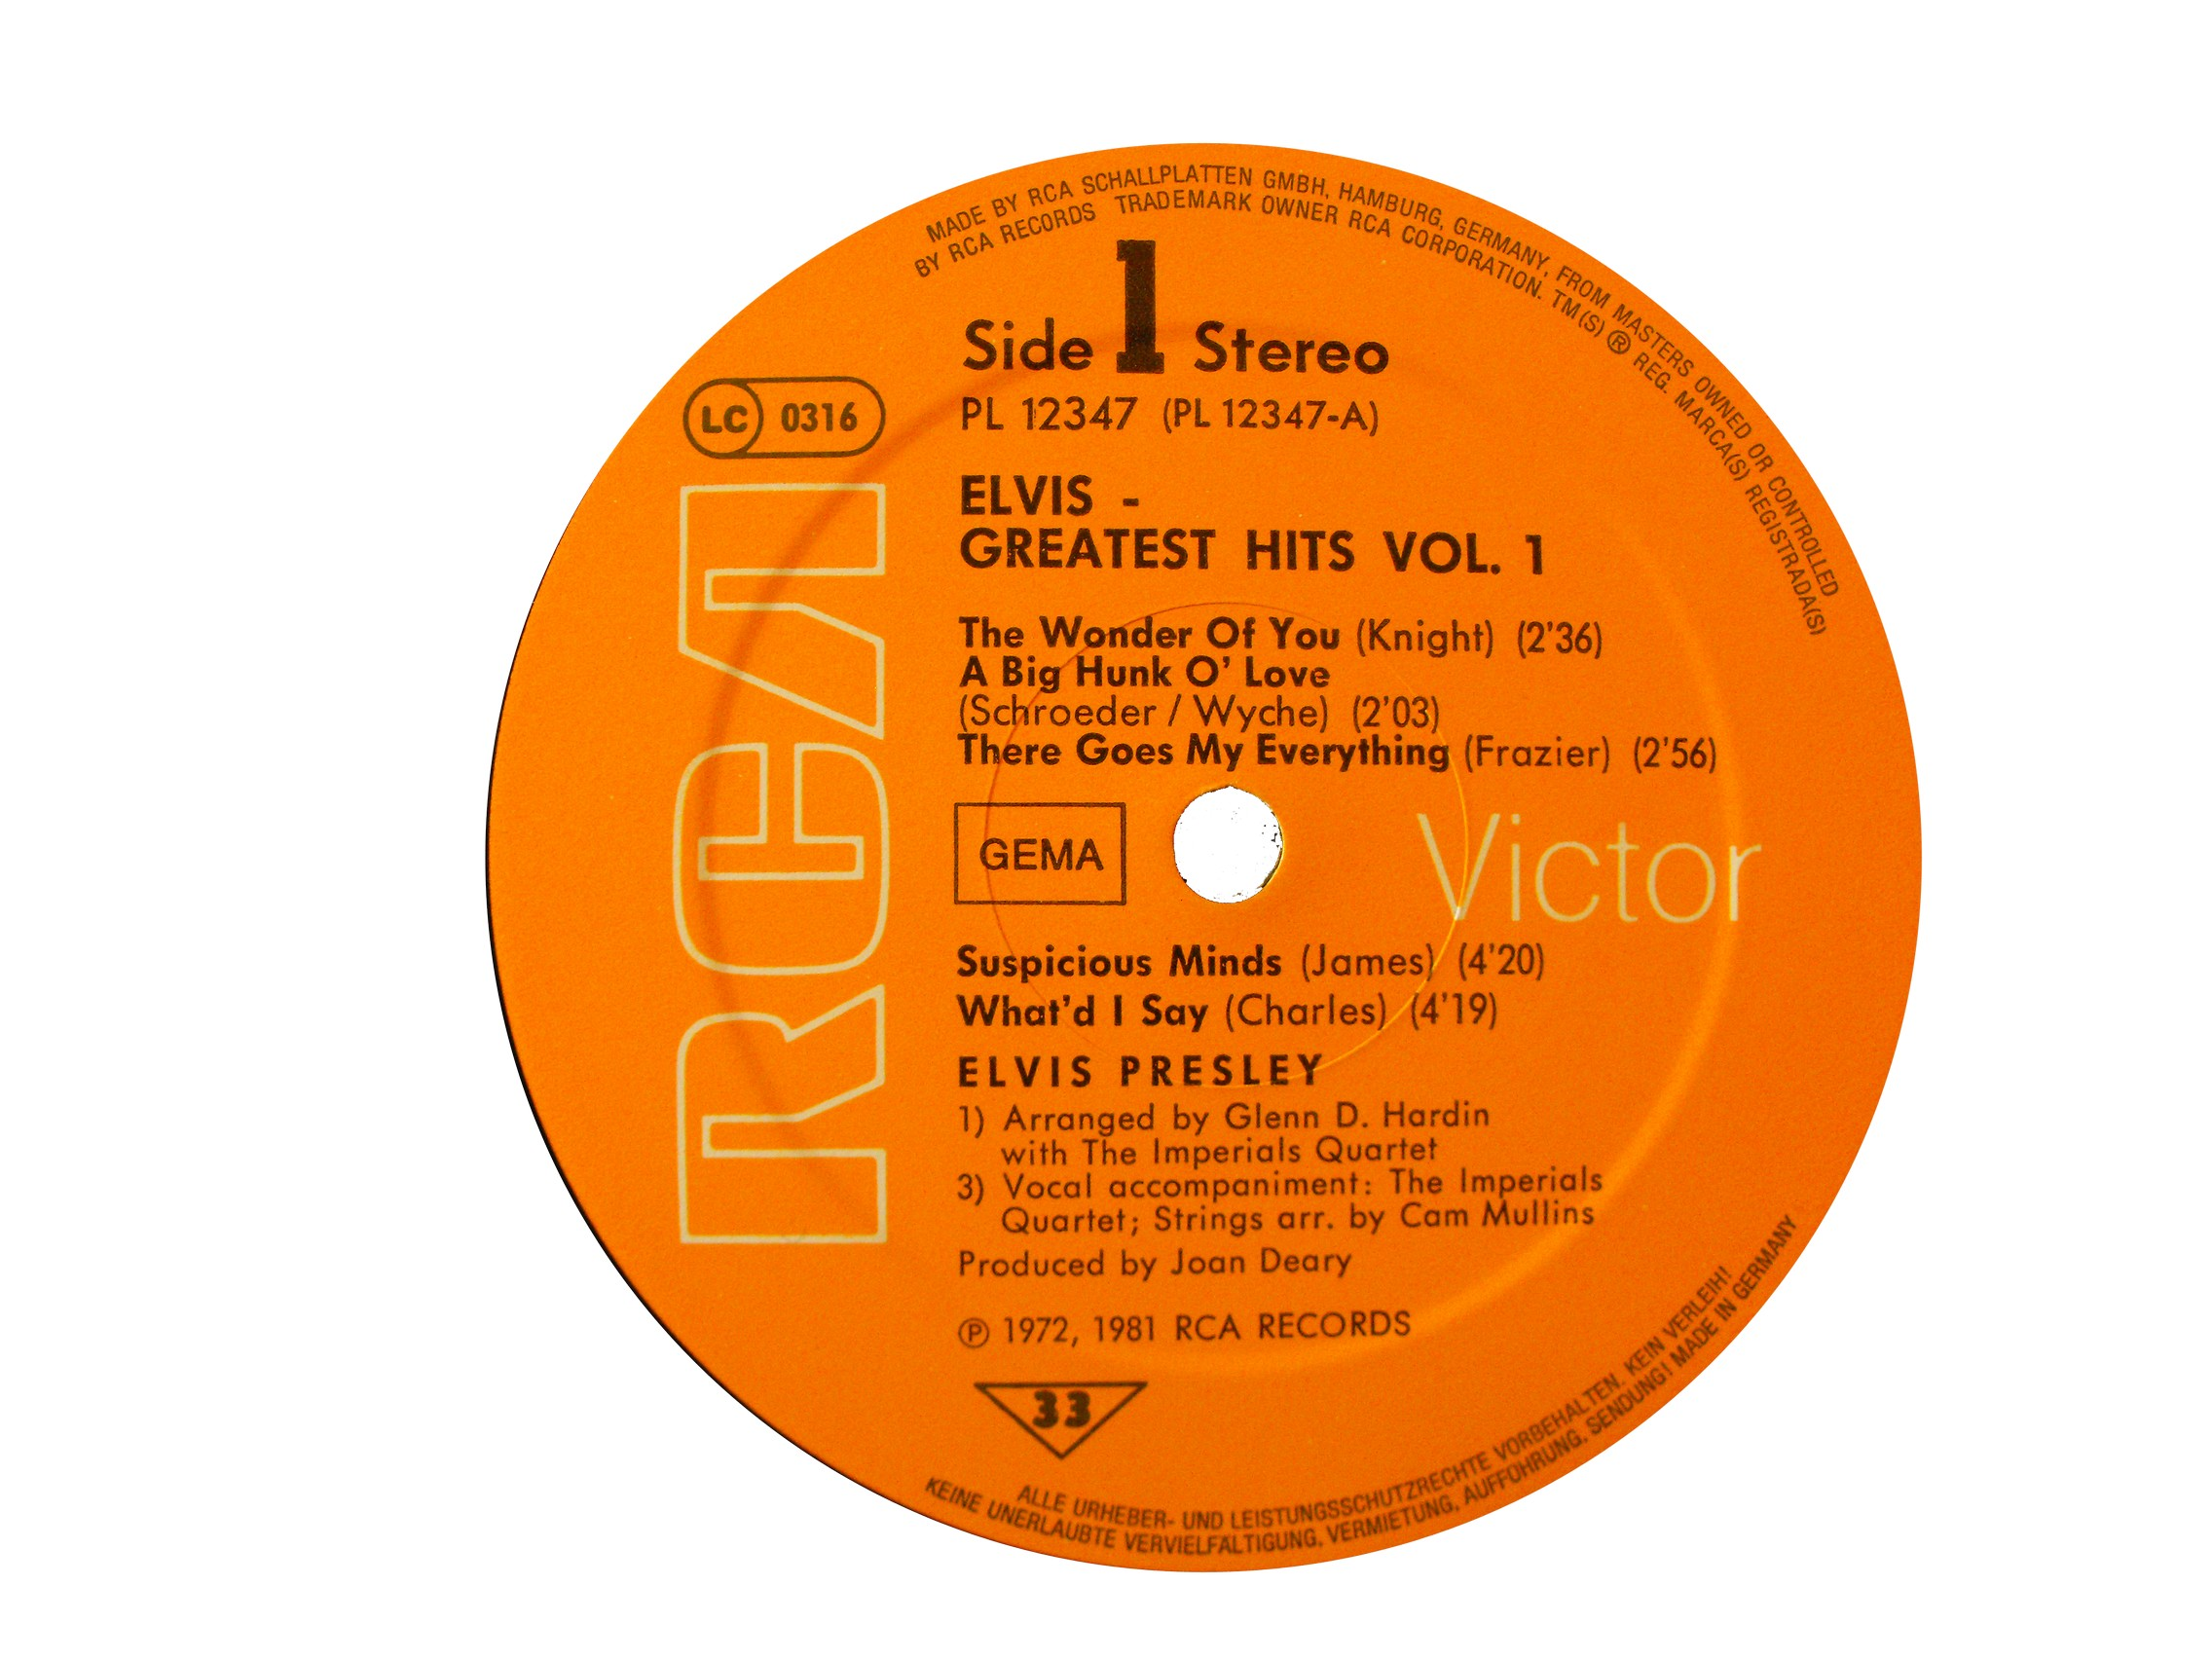 GREATEST HITS VOL. 1 Ghlabel10bur4